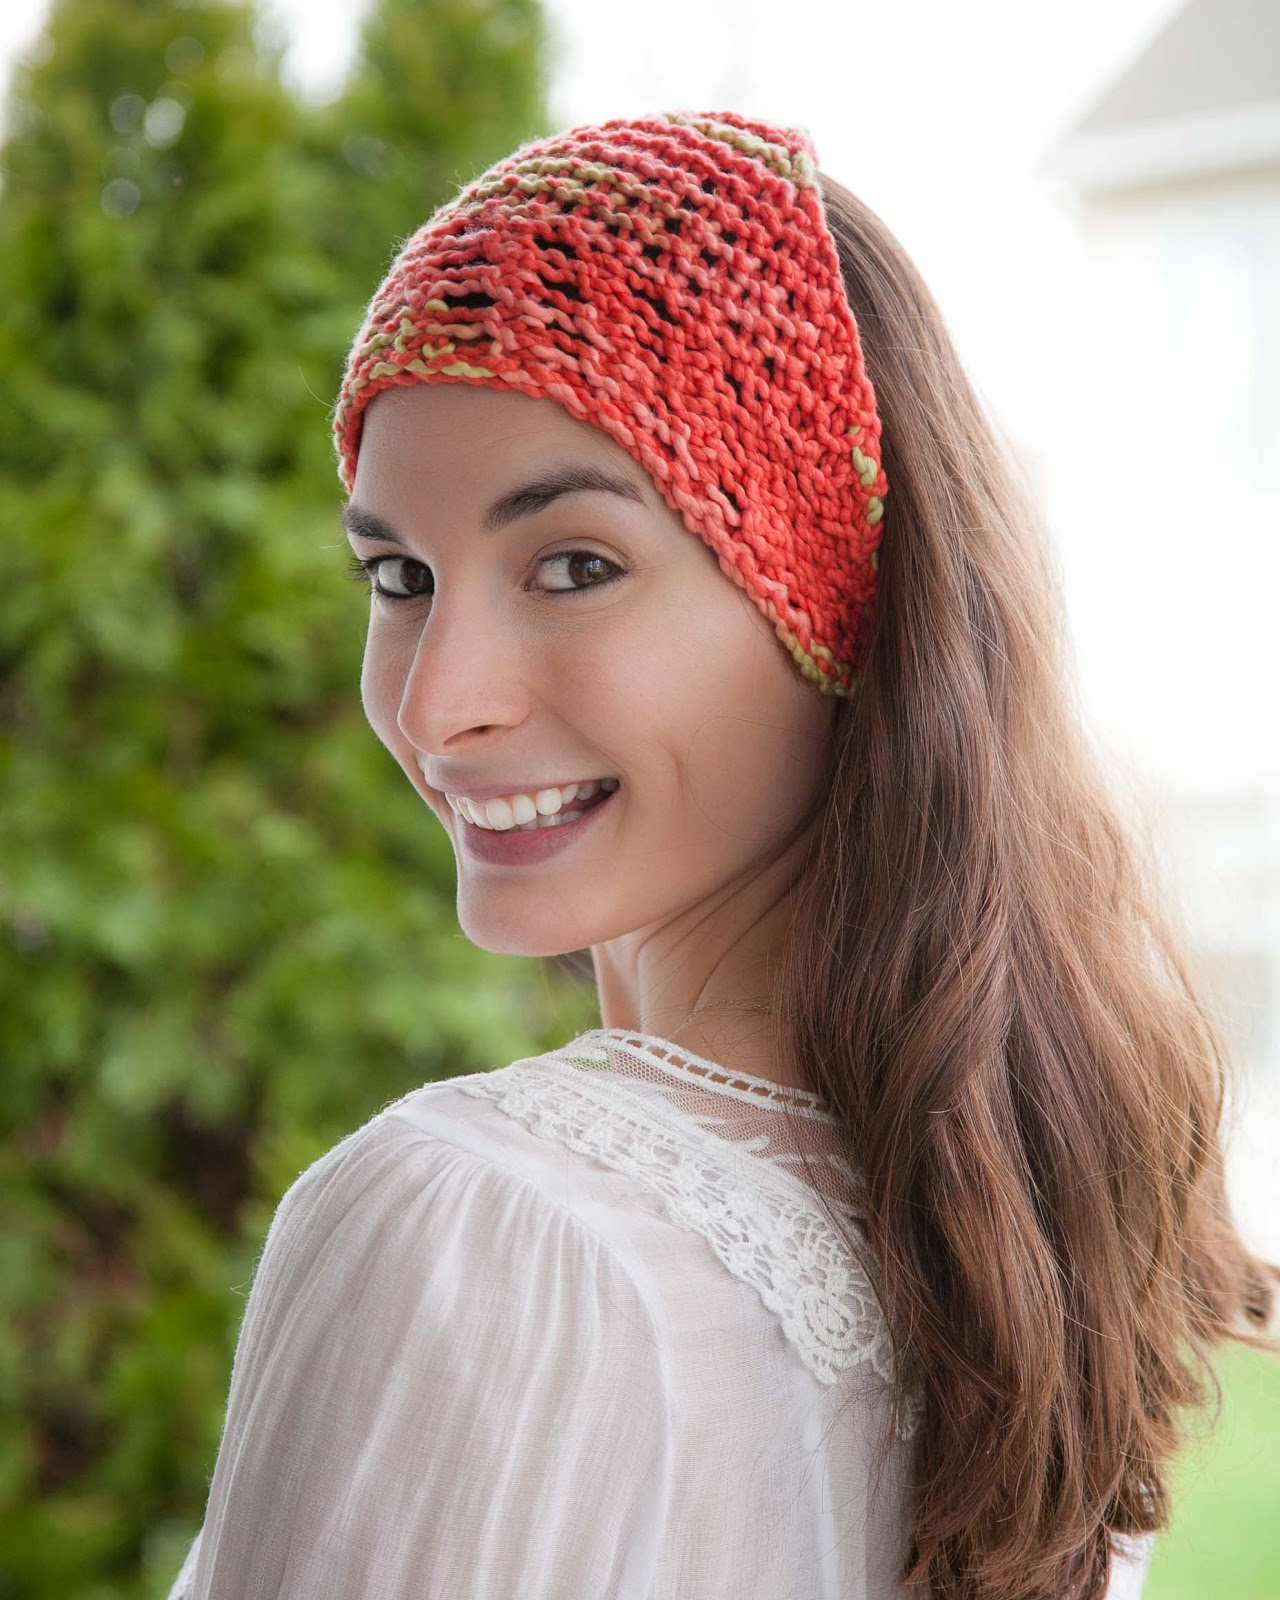 Knitted Head Scarf Pattern : Loom Knitting by This Moment is Good!: LOOM KNIT HEAD WRAP/BANDANNA